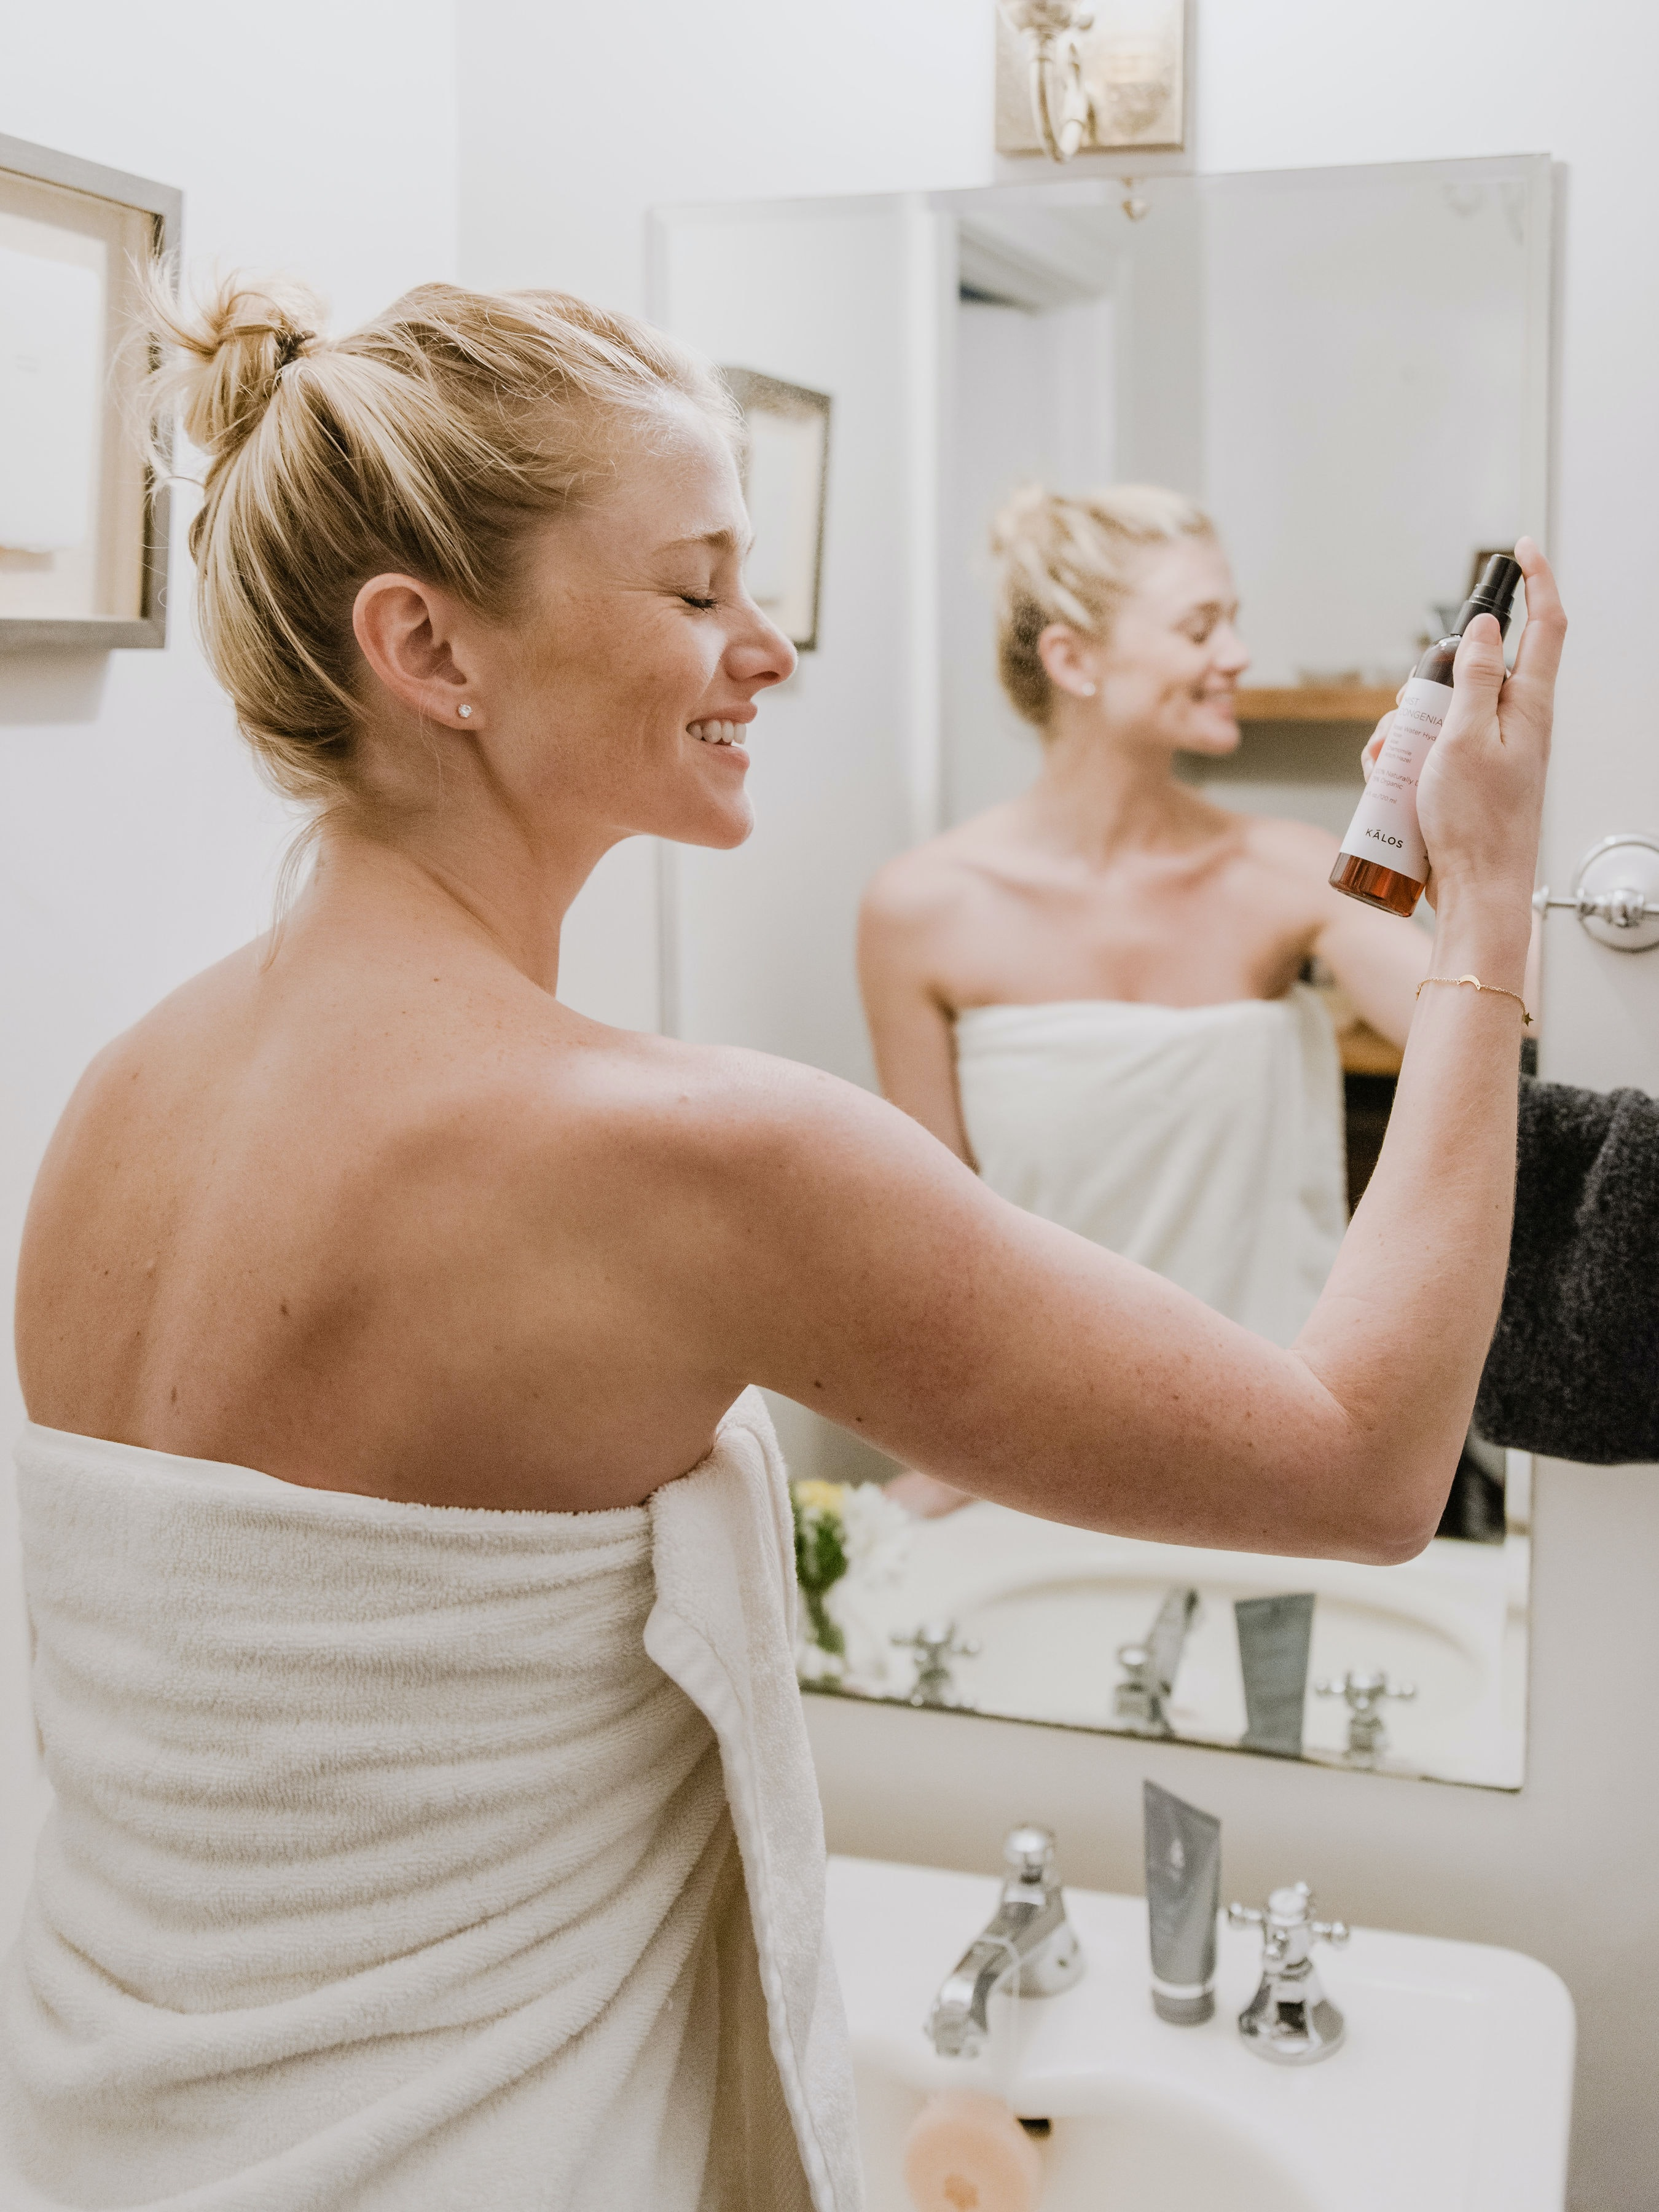 Spend time on yourself first, Blonde woman with hair in bun in bathroom spraying face with beauty product taking time for self care, start saying no